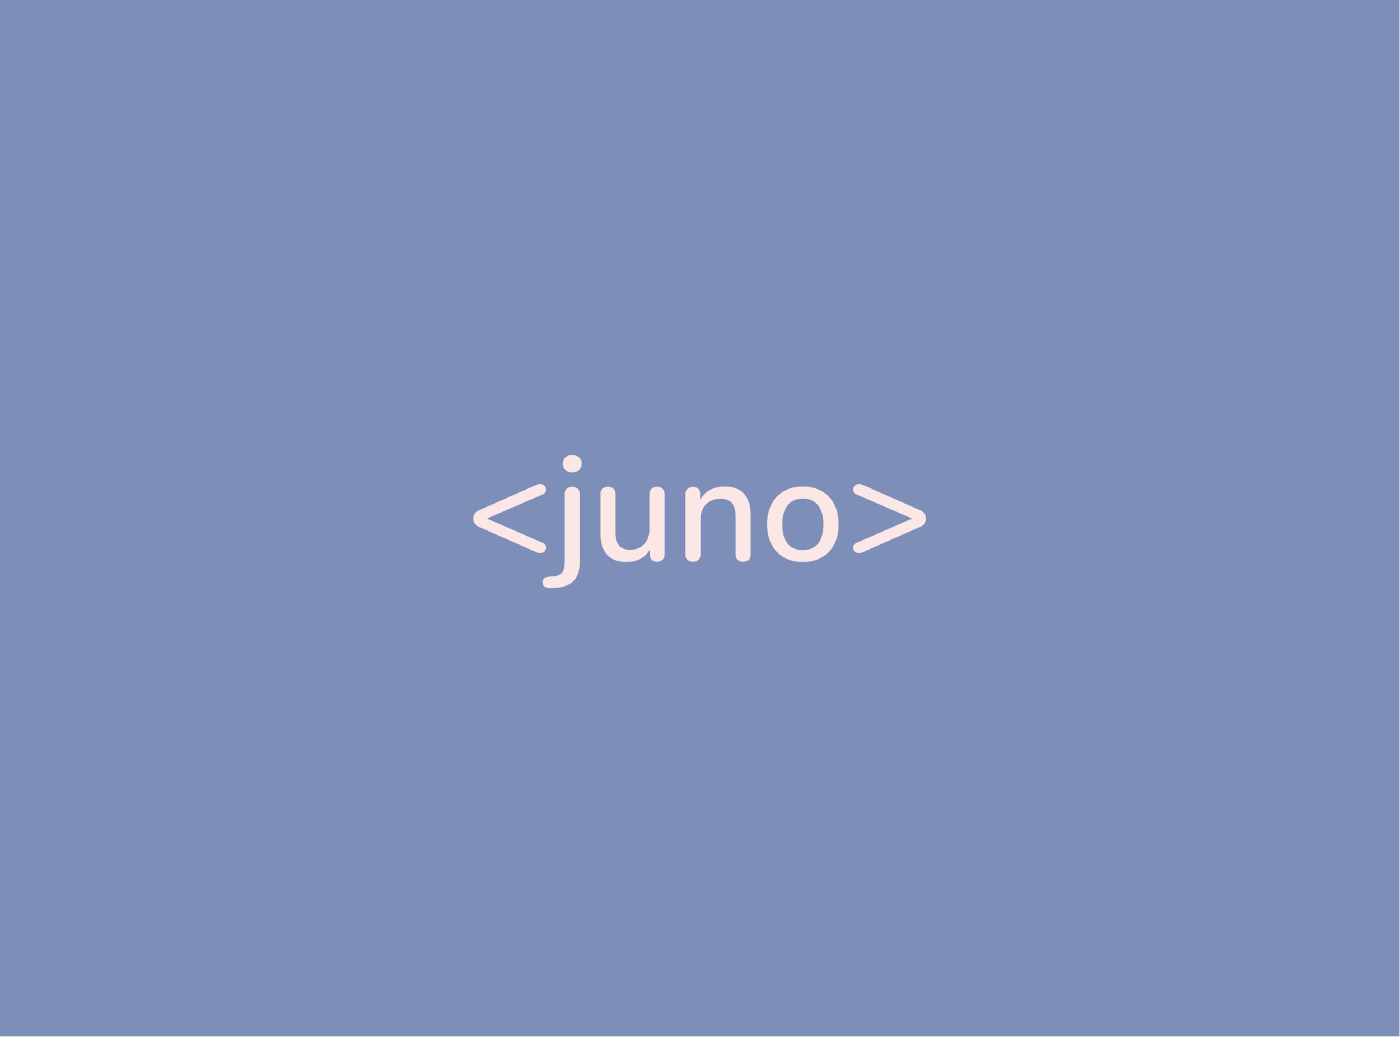 An opening HTML bracket with the word Juno inside to indicate the beginning of a journey